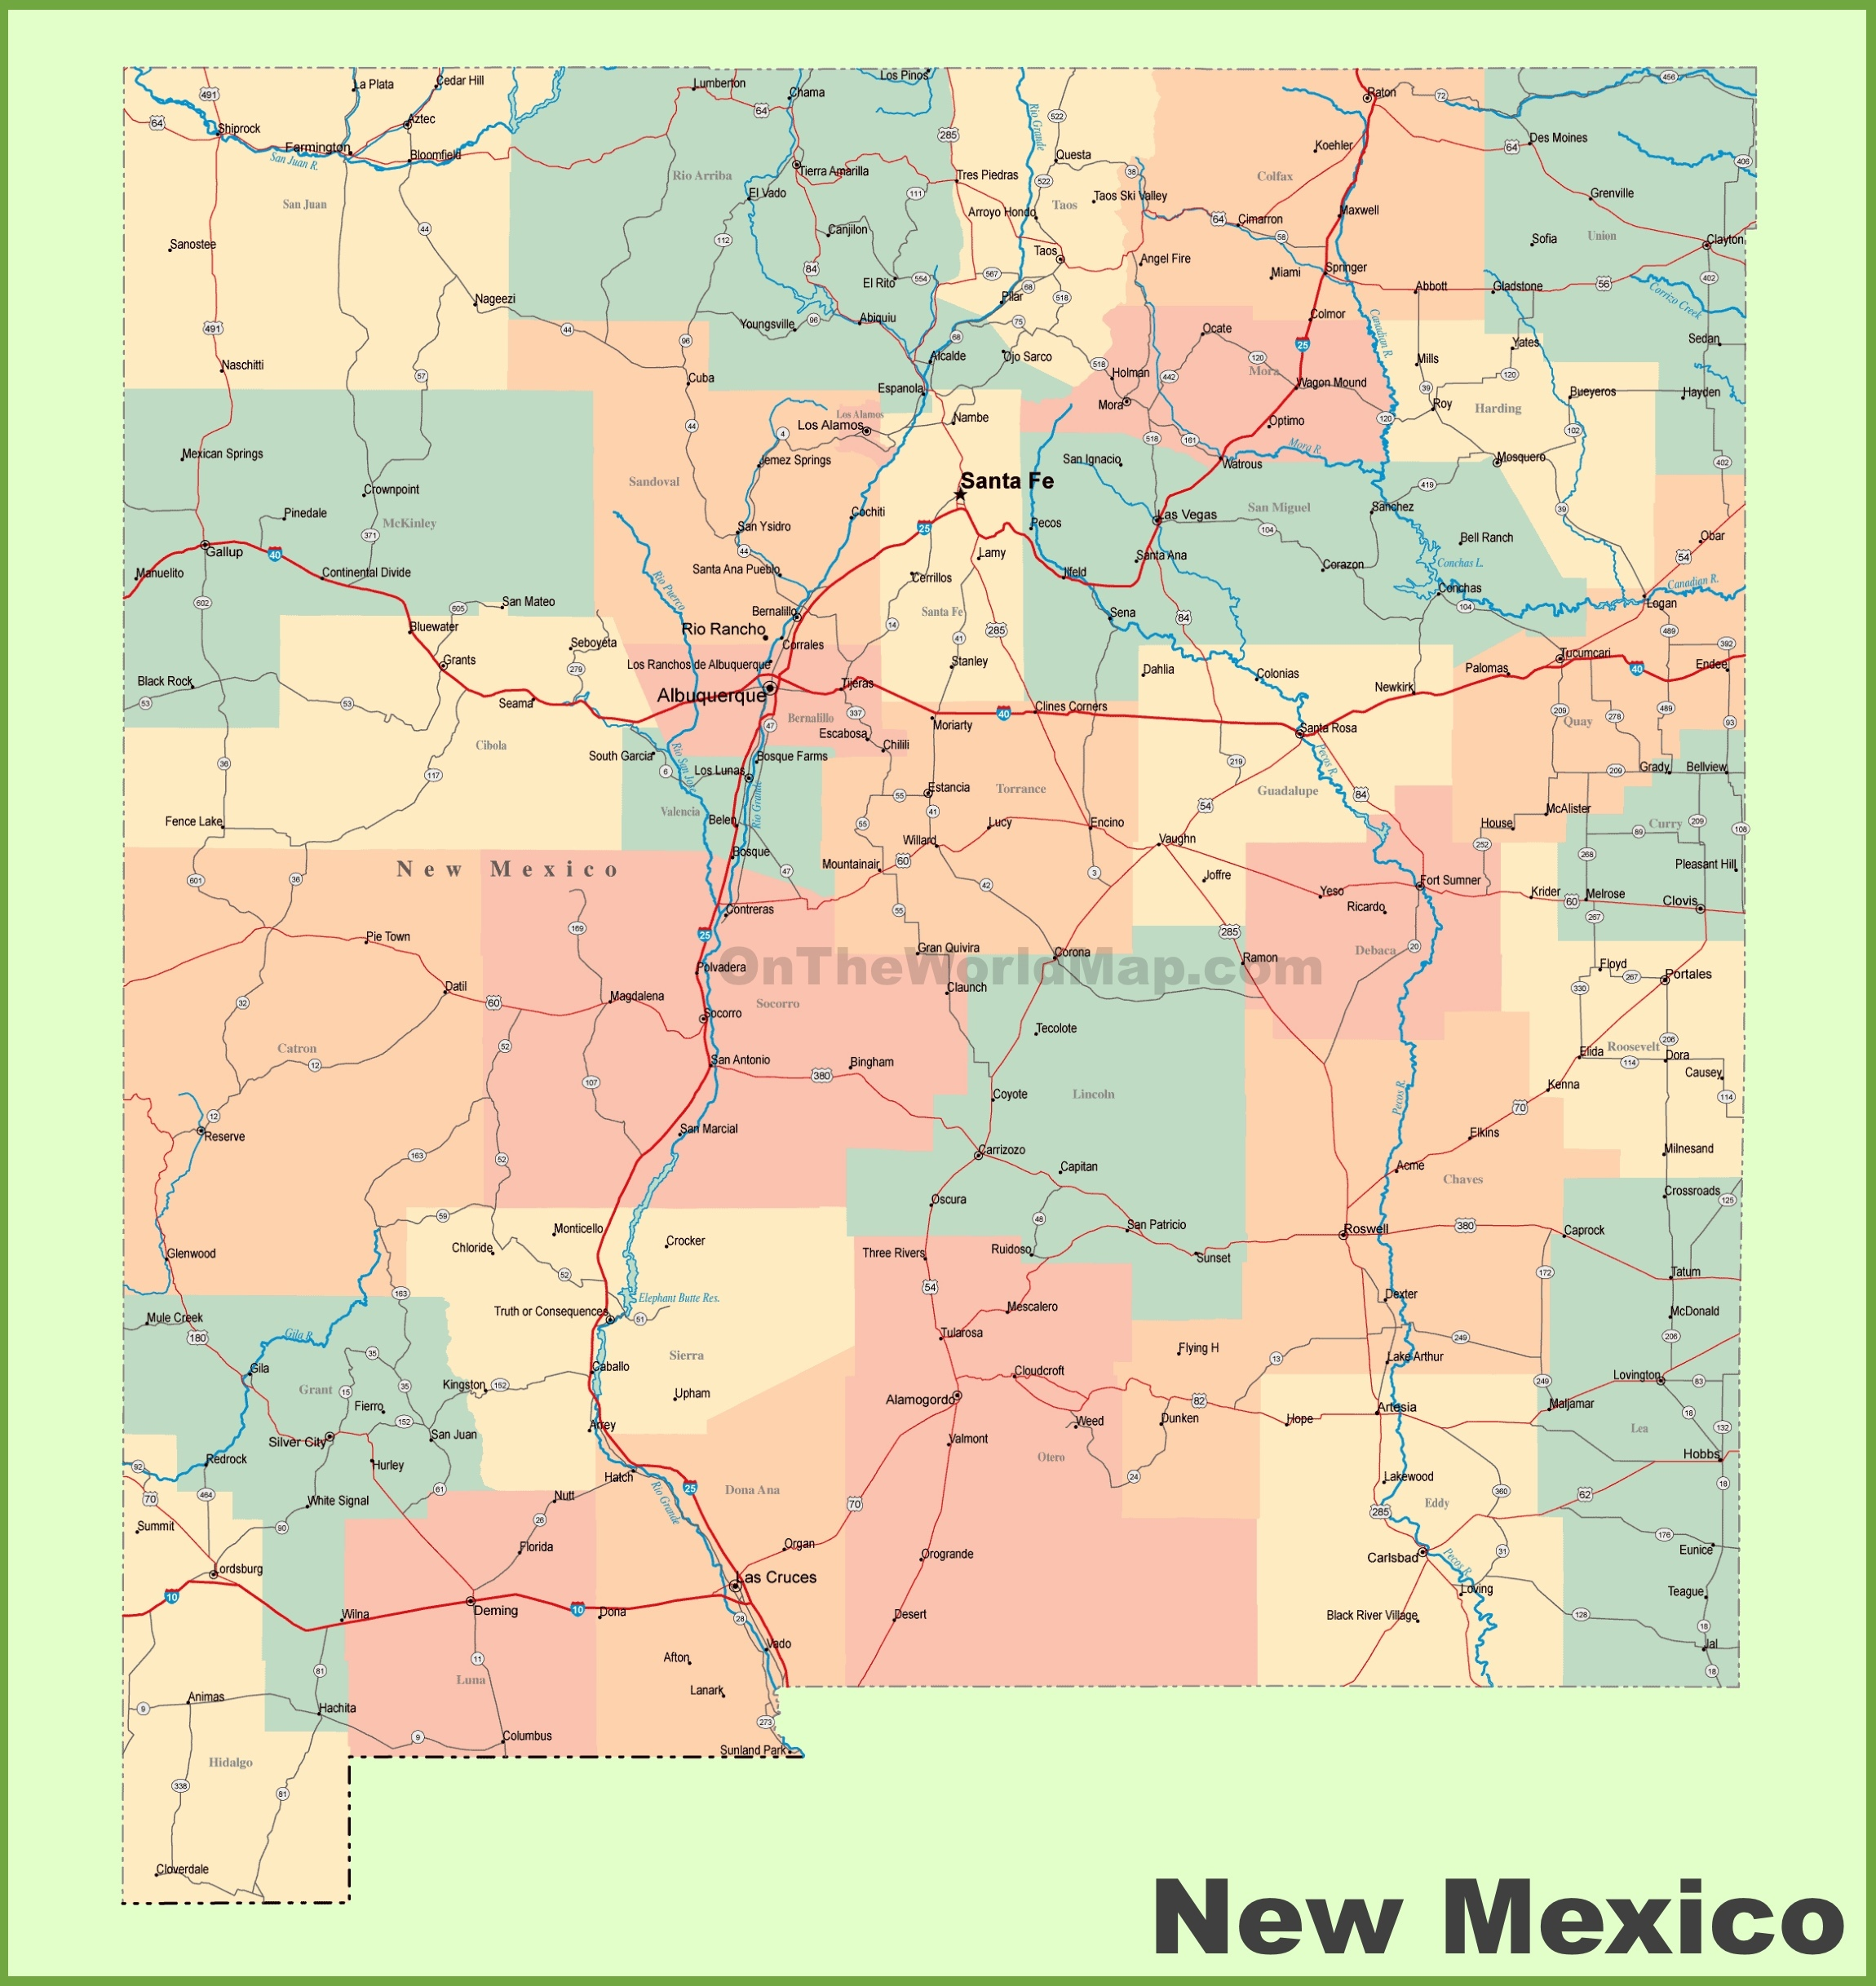 Road Map Of New Mexico With Cities - Maps of new mexico